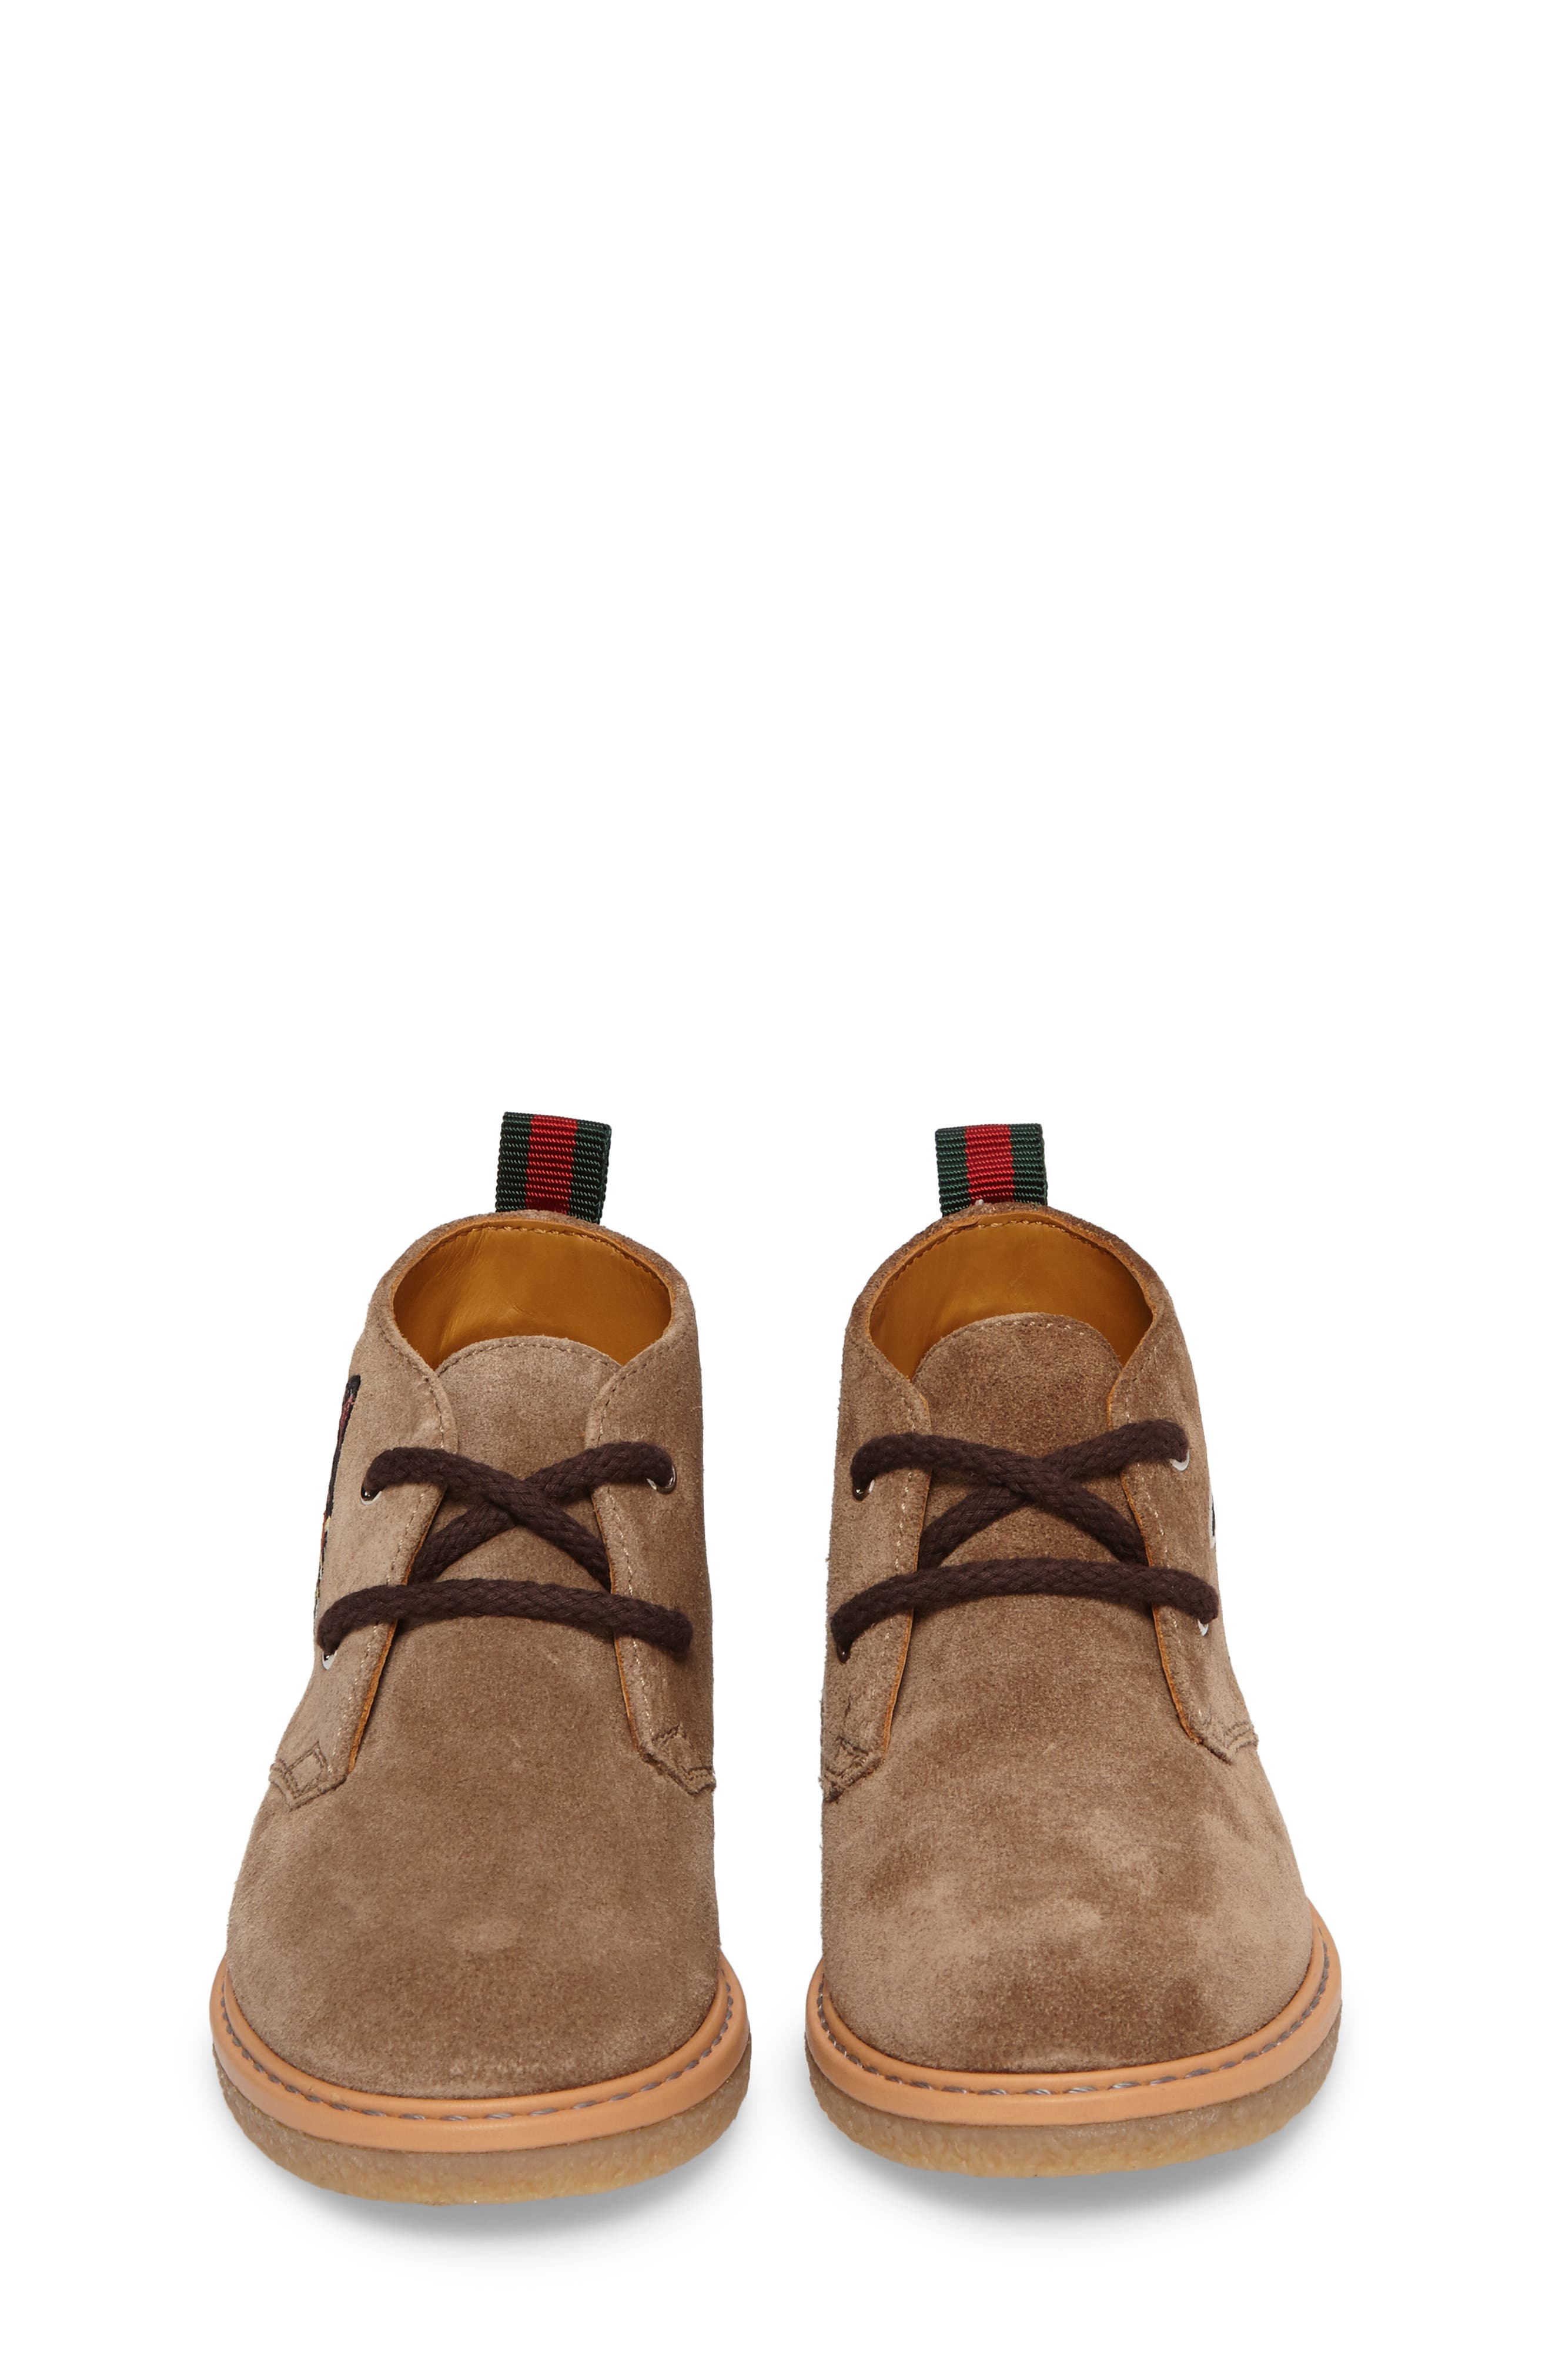 Lucas Embroidered Bootie,                             Alternate thumbnail 4, color,                             250